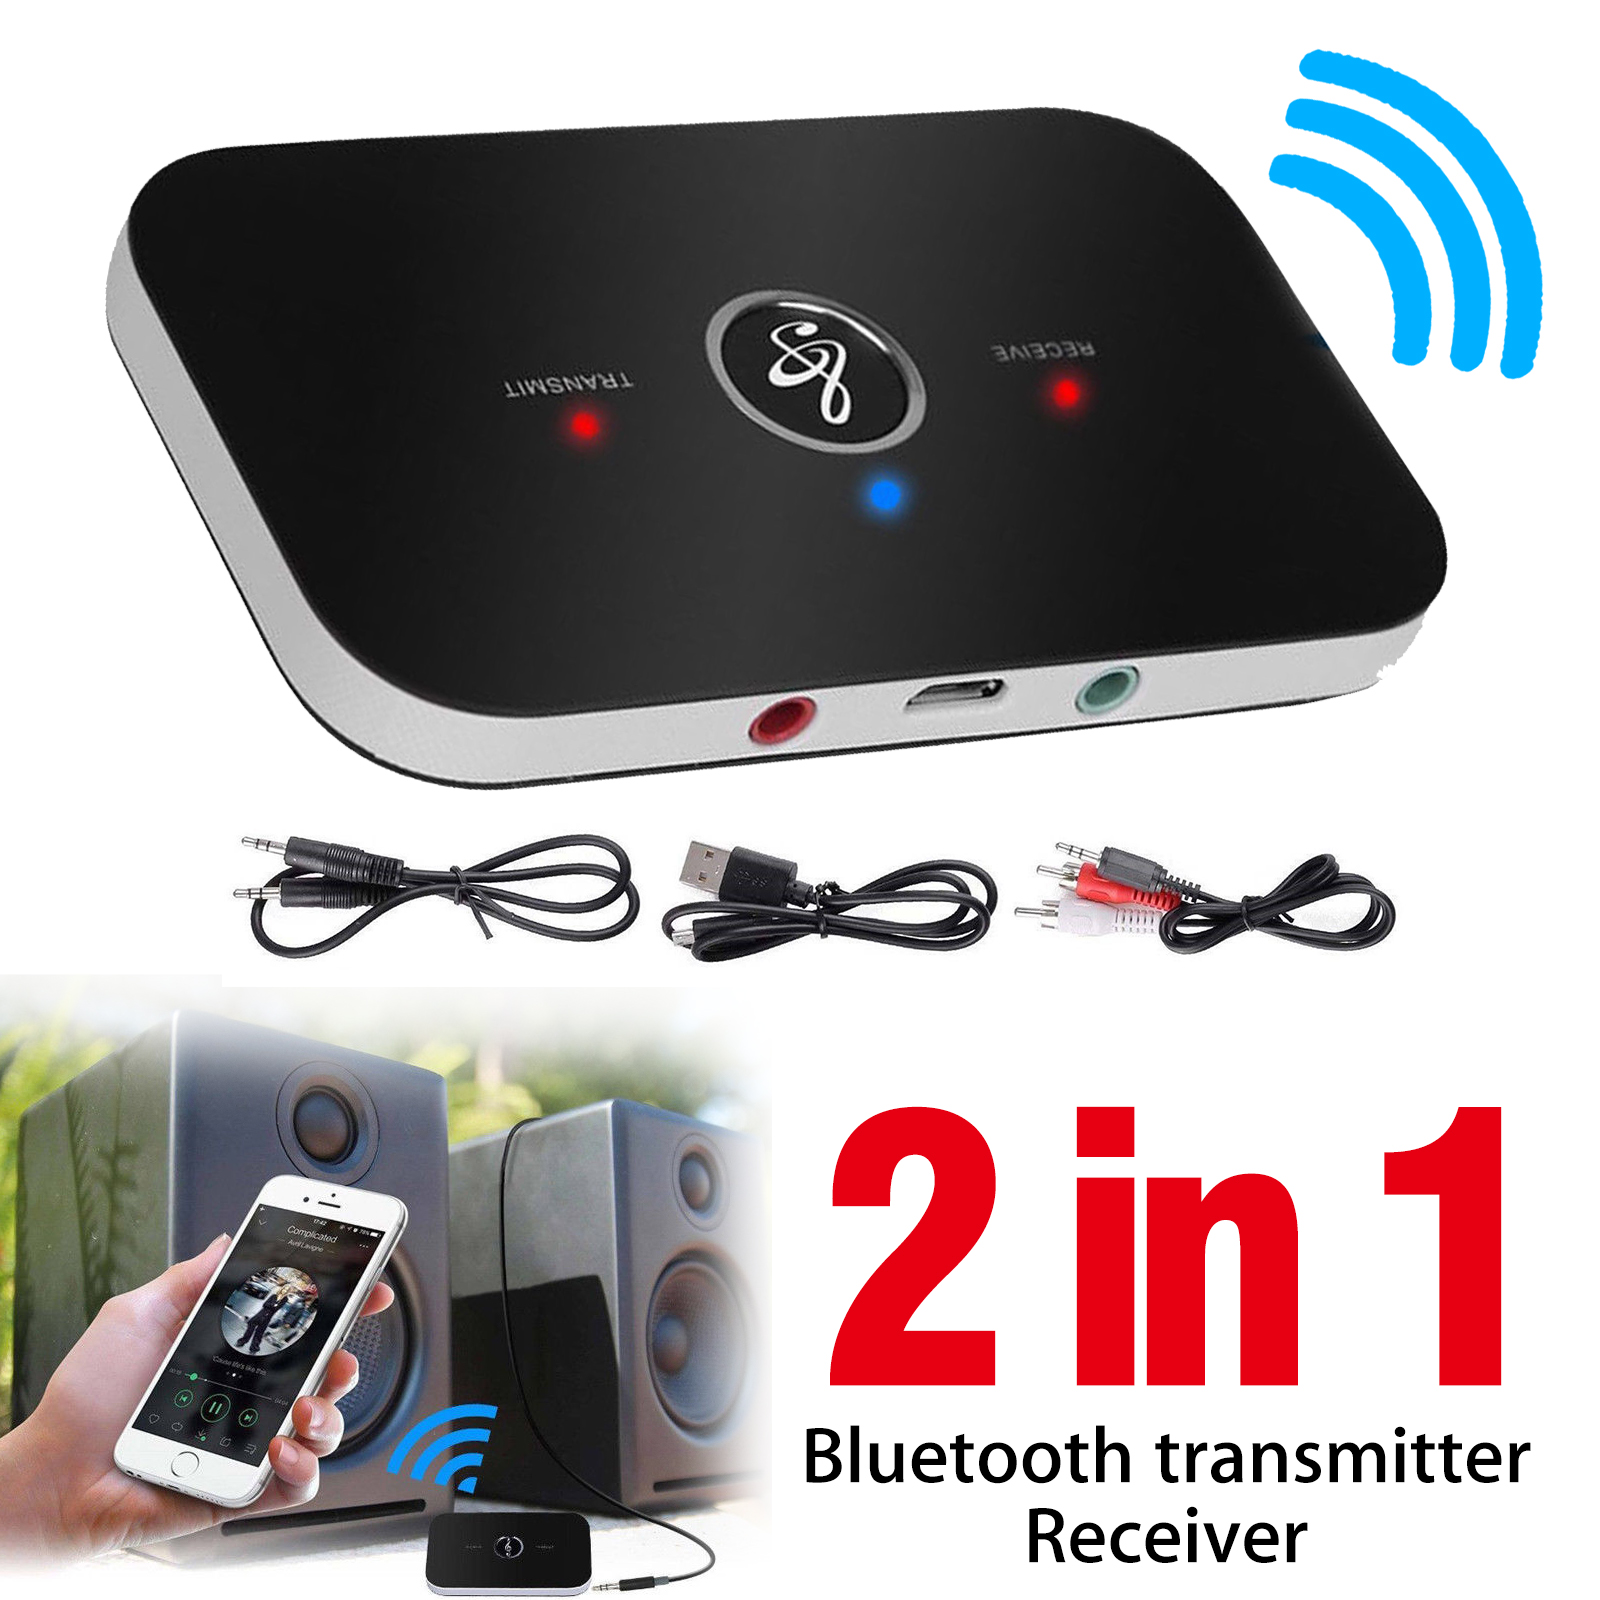 EEEkit 2 in 1 Wireless Bluetooth Transmitter & Receiver A2DP Home TV Stereo Audio Adapter Compatible with TV ,Speaker, PC,CD Player, iPhone, iPod, iPad, Tablets, MP3 Player Or Car Stereo and More